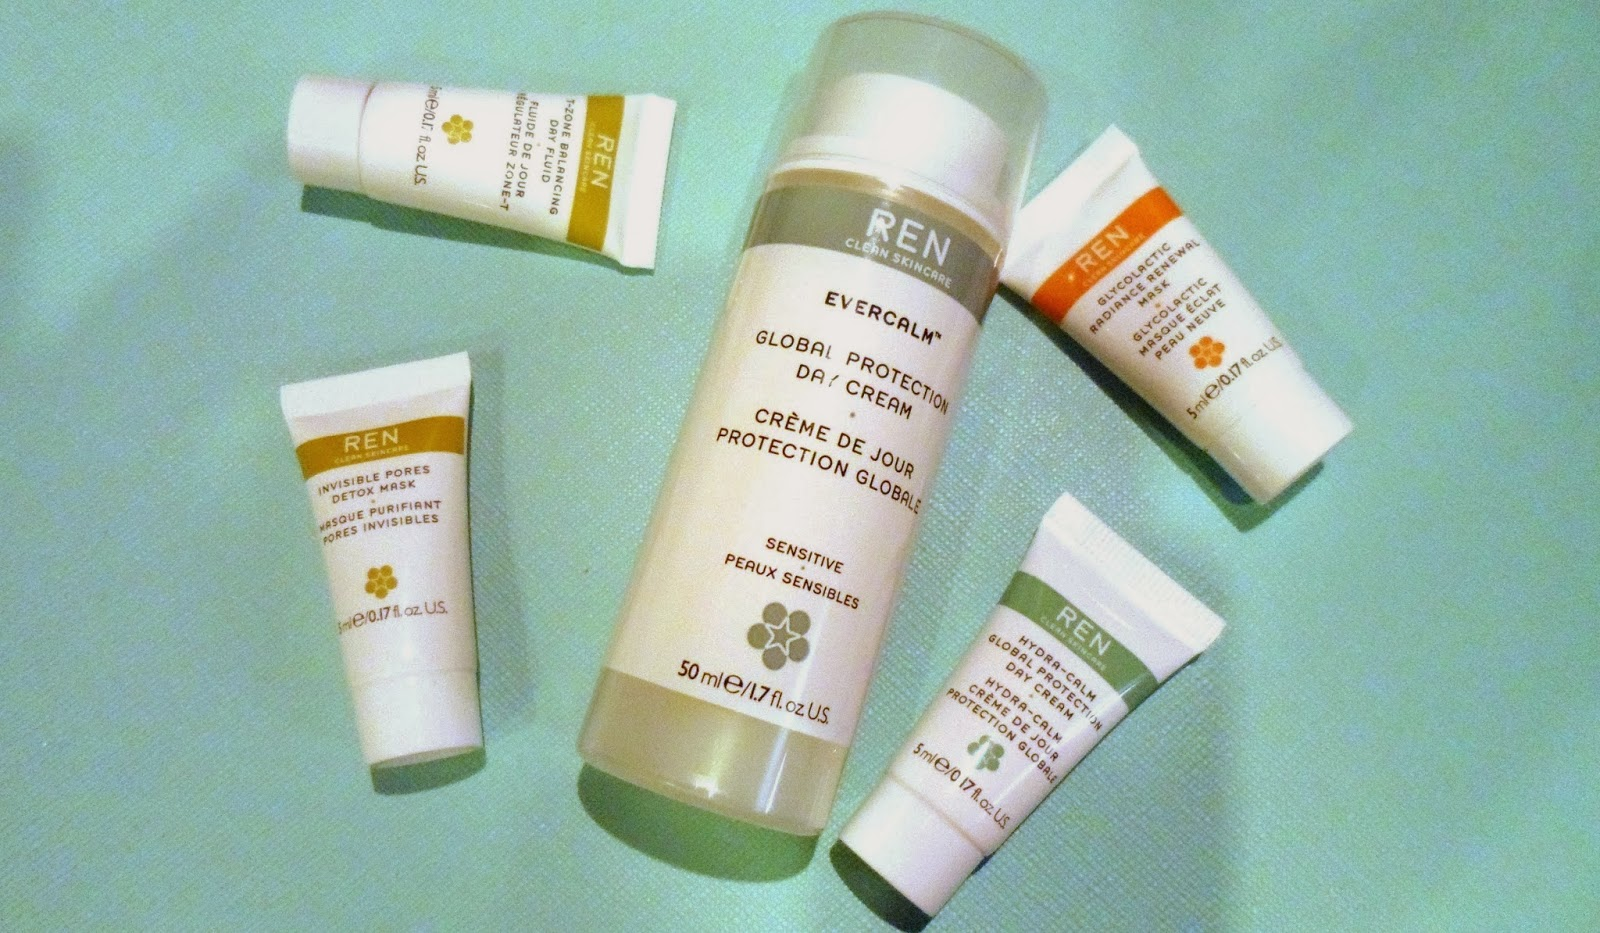 REN SKINCARE MOISTURISER AND SAMPLES